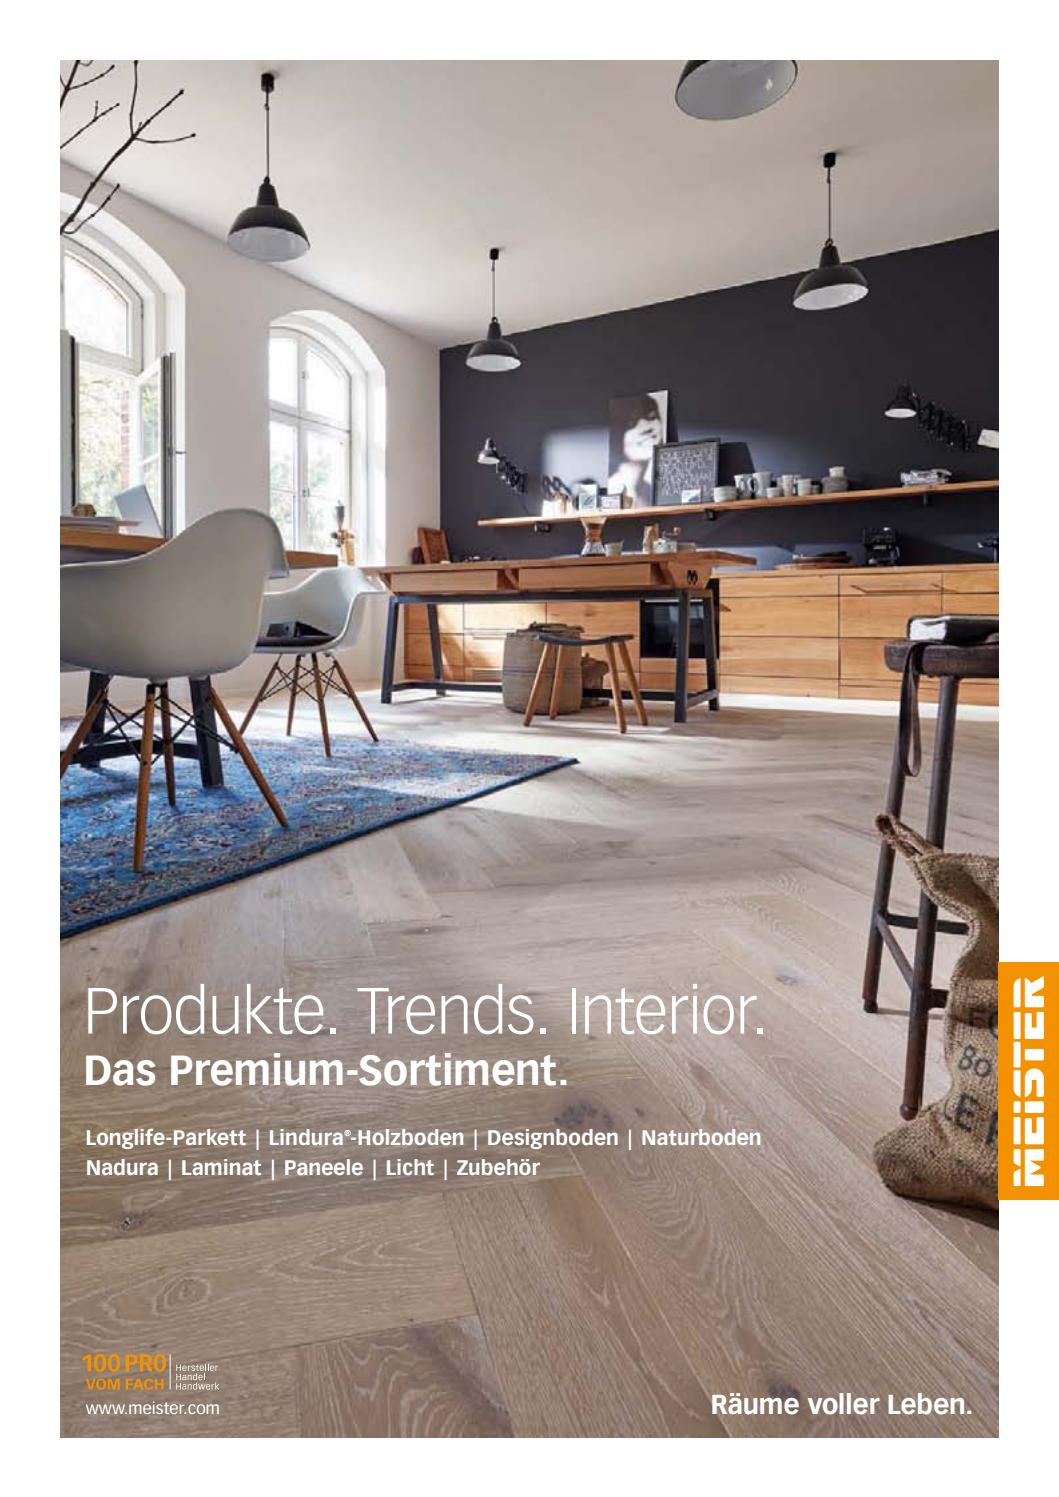 Meister | Produkte. Trends. Interior. By HolzLand Köster   Issuu